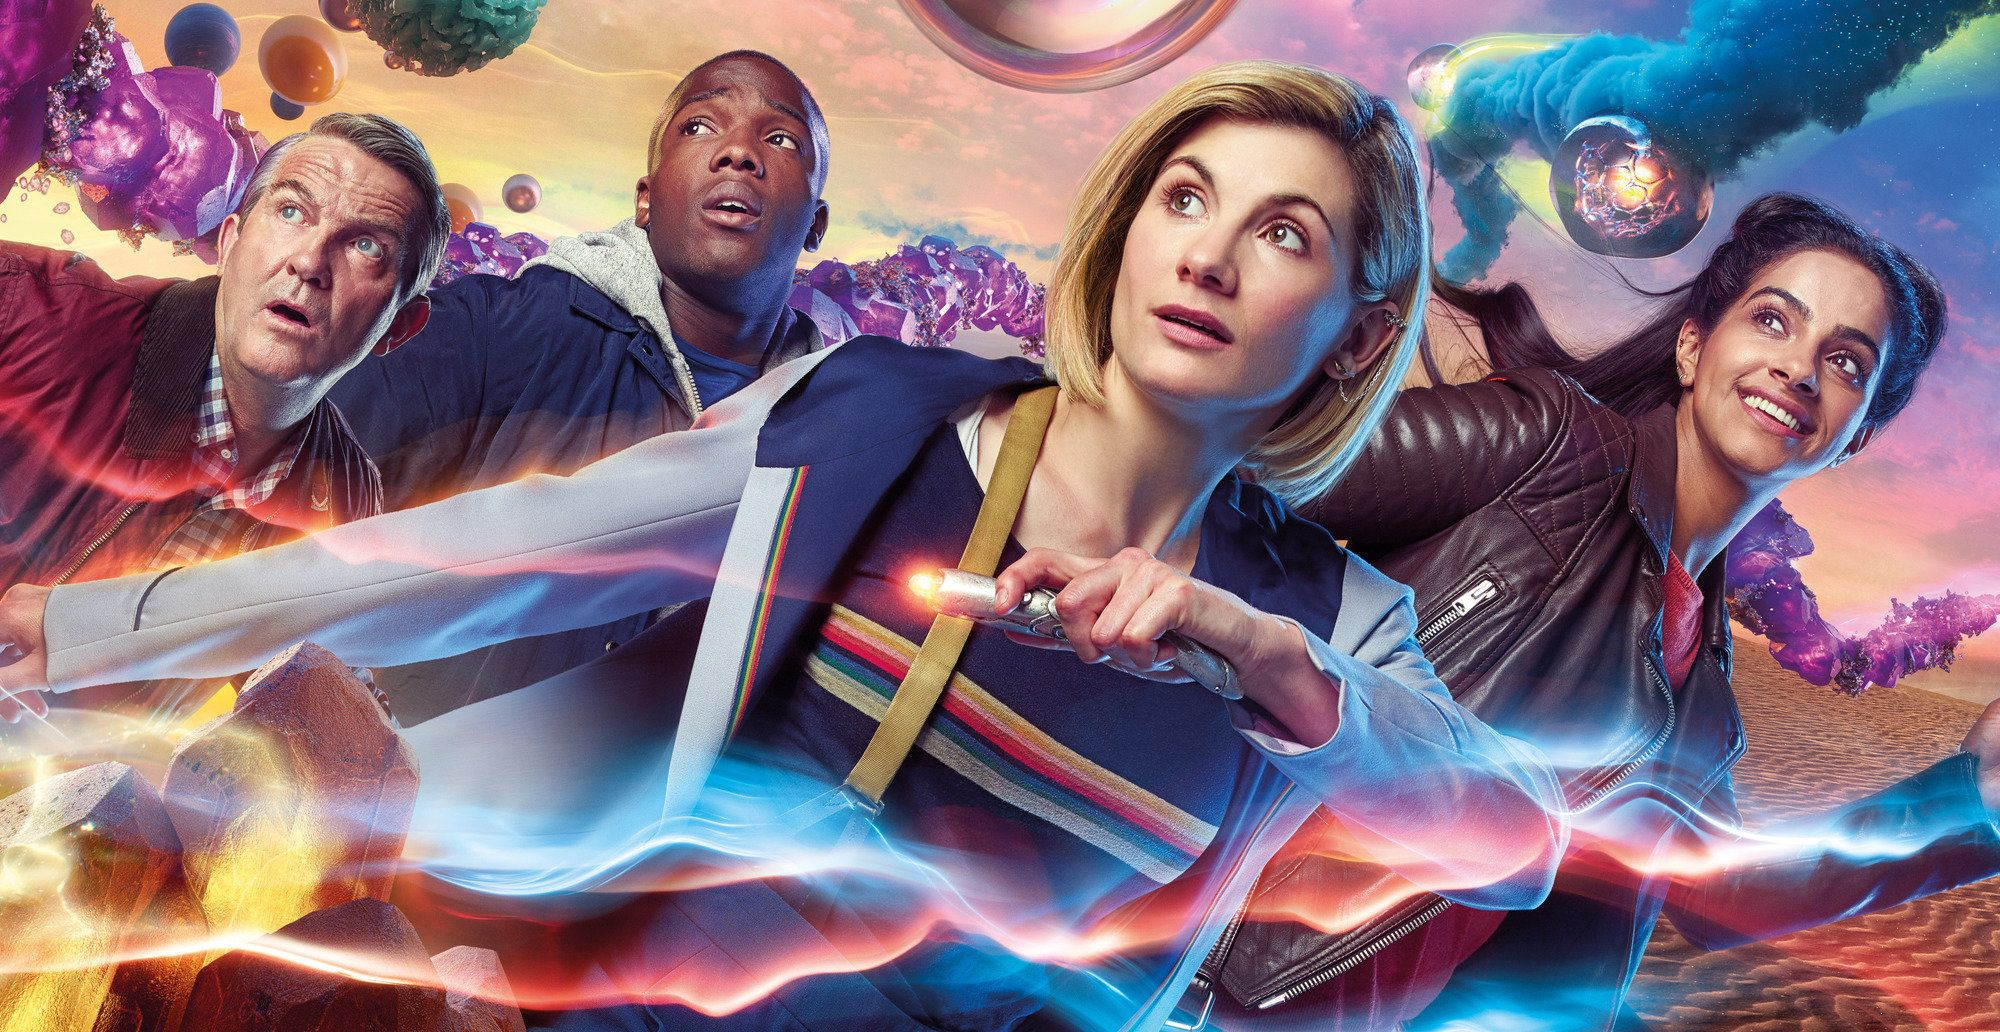 Doctor Who's Much-Needed Reboot Has Opened Up The Tardis To All - HuffPost